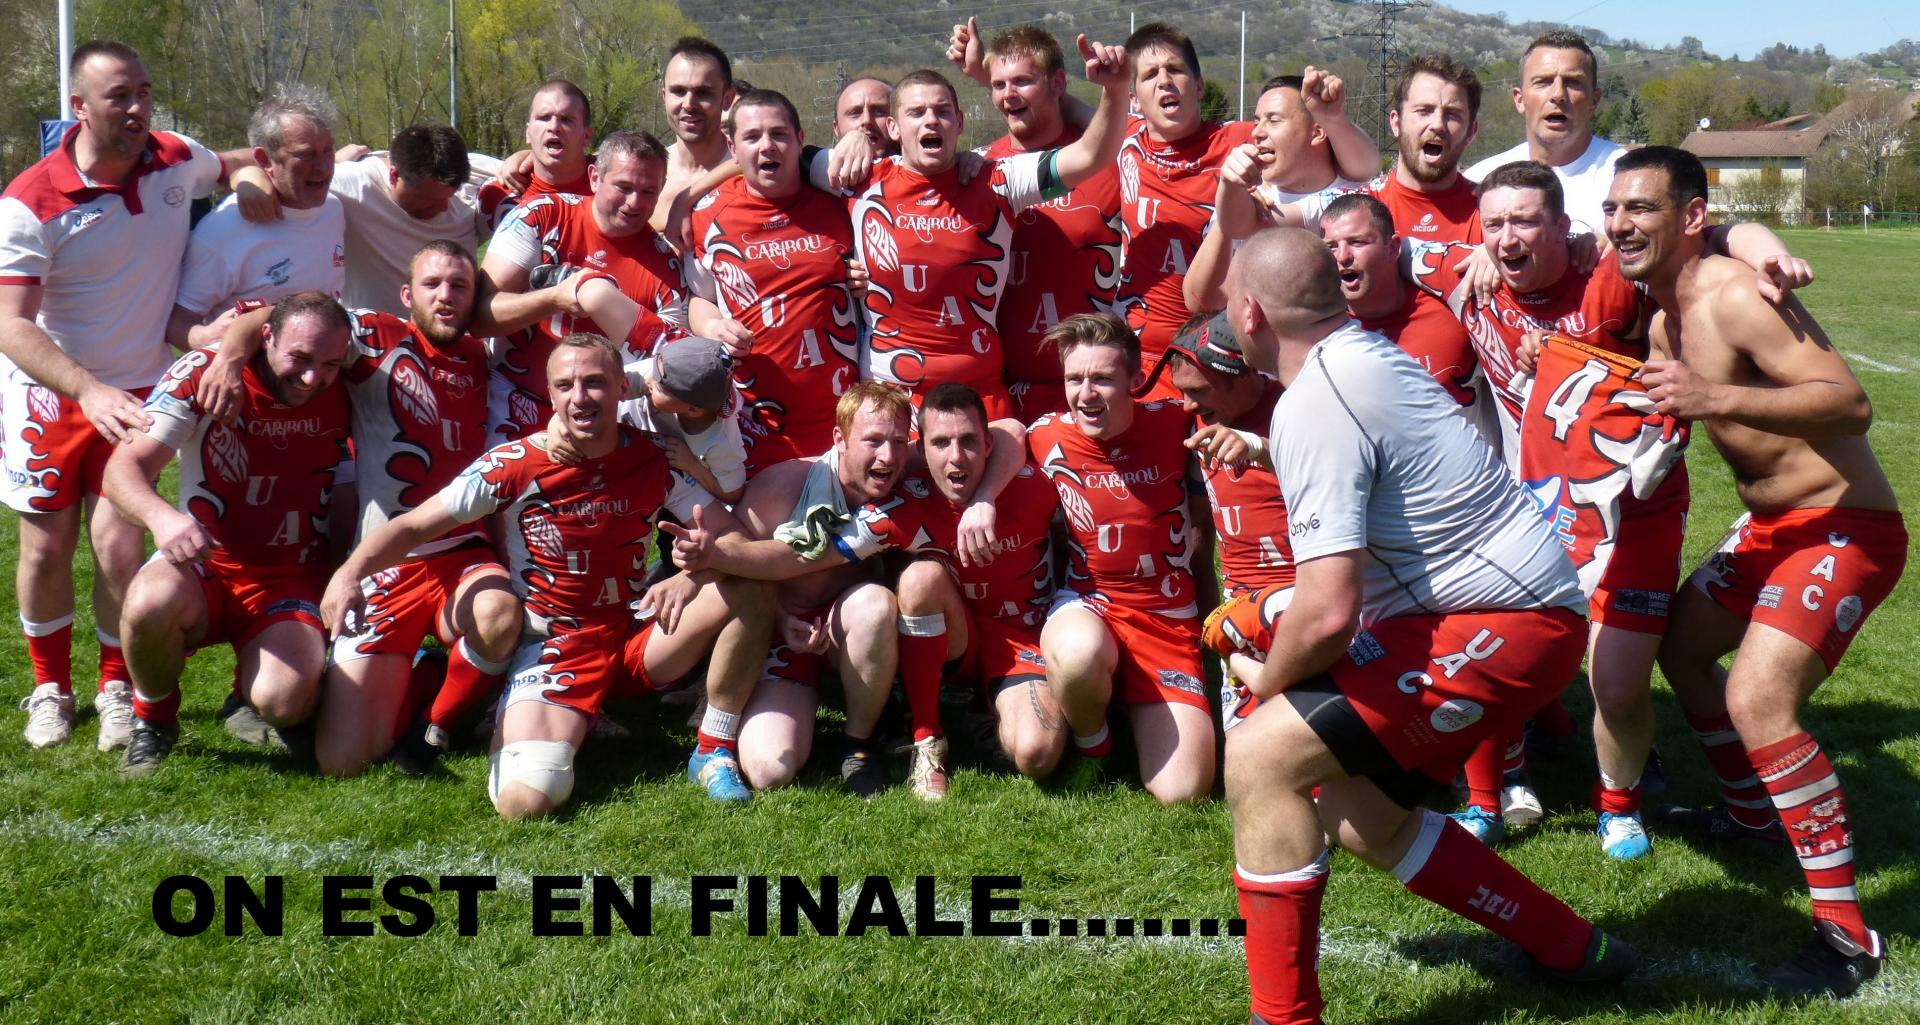 Photo uac reserve en finale22